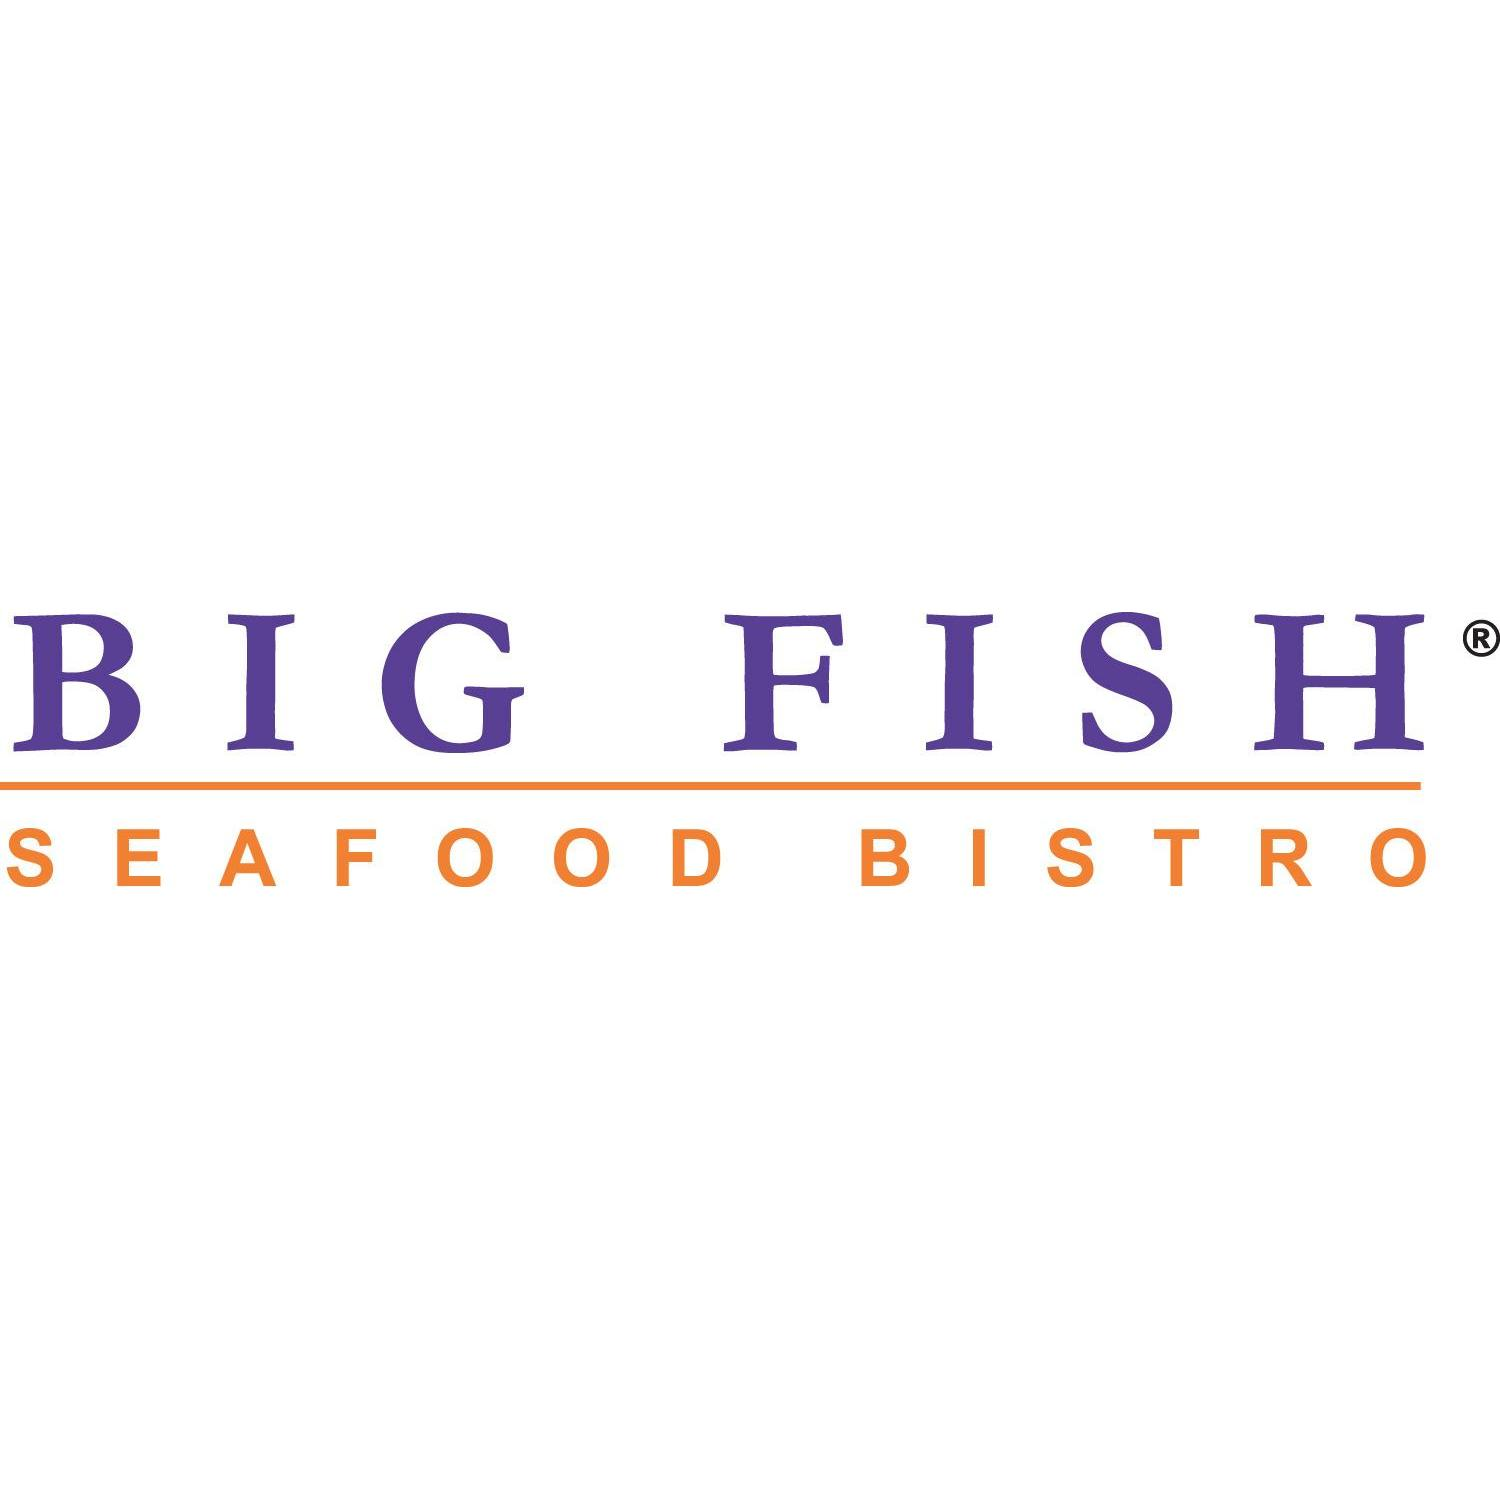 Big fish seafood bistro coupons near me in dearborn 8coupons for Big fish seafood bistro